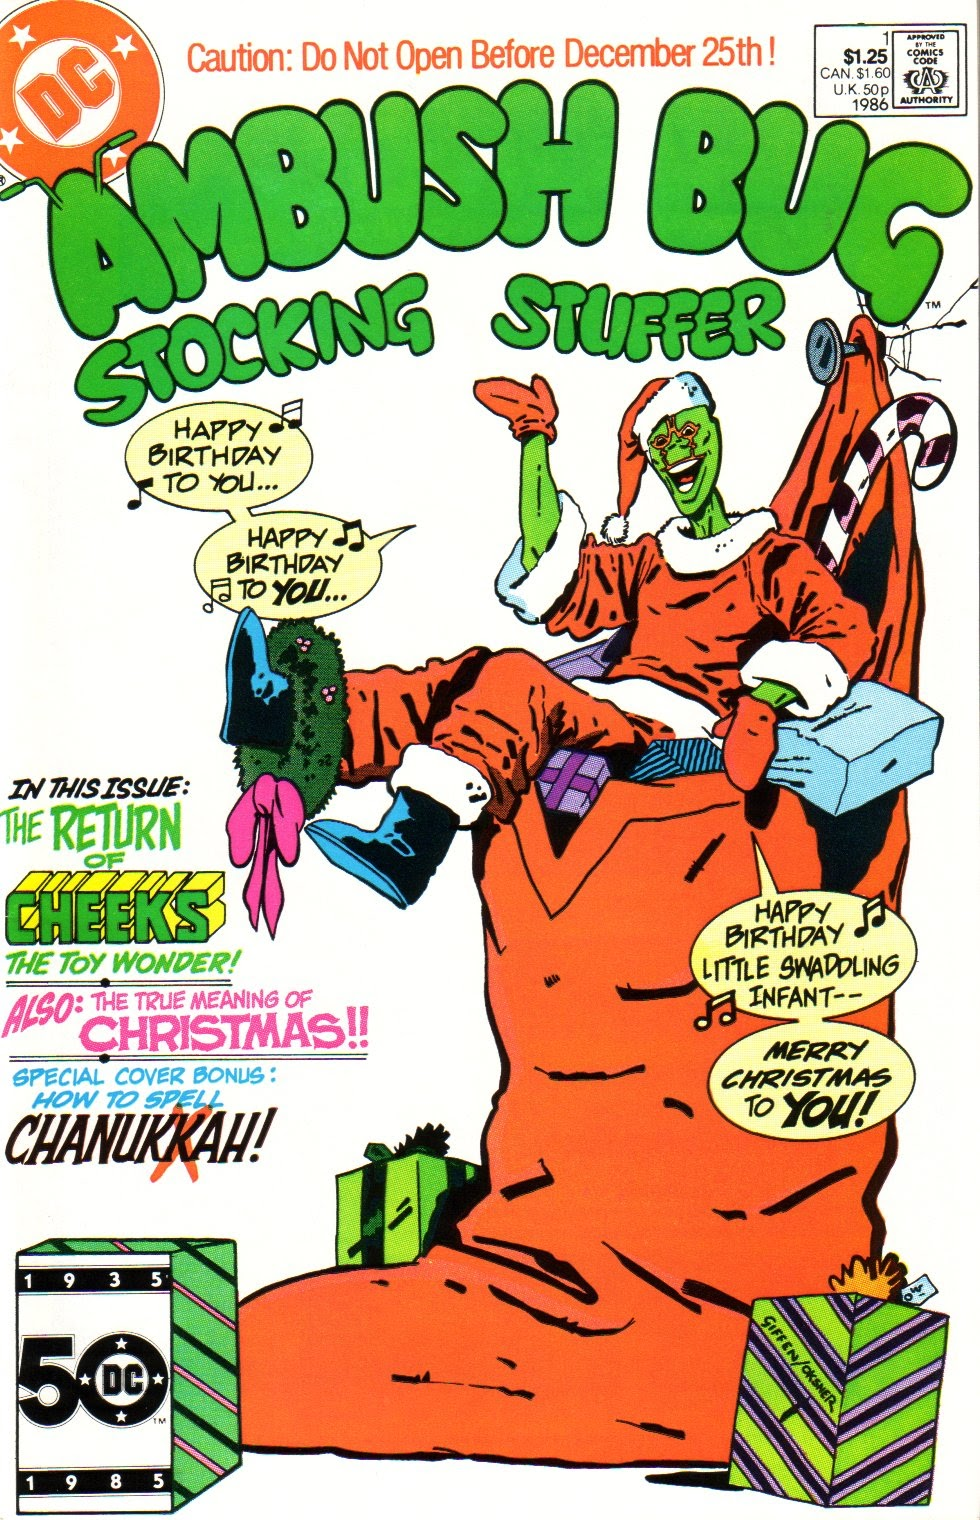 Ambush Bug Stocking Stuffer Full Page 1